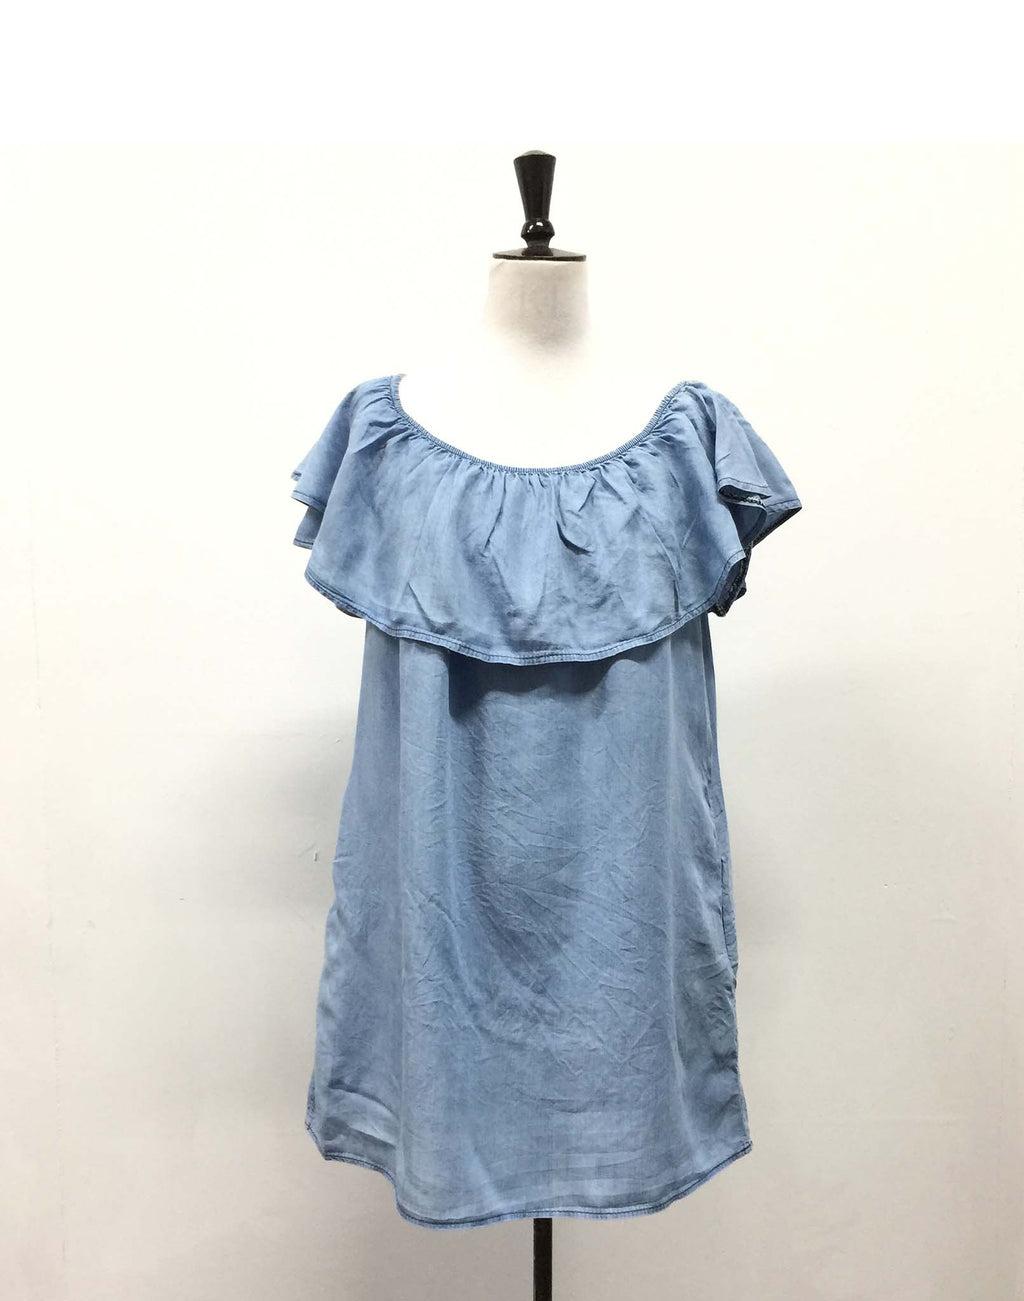 Senes French Denim Off Shoulder Dress - Size 12